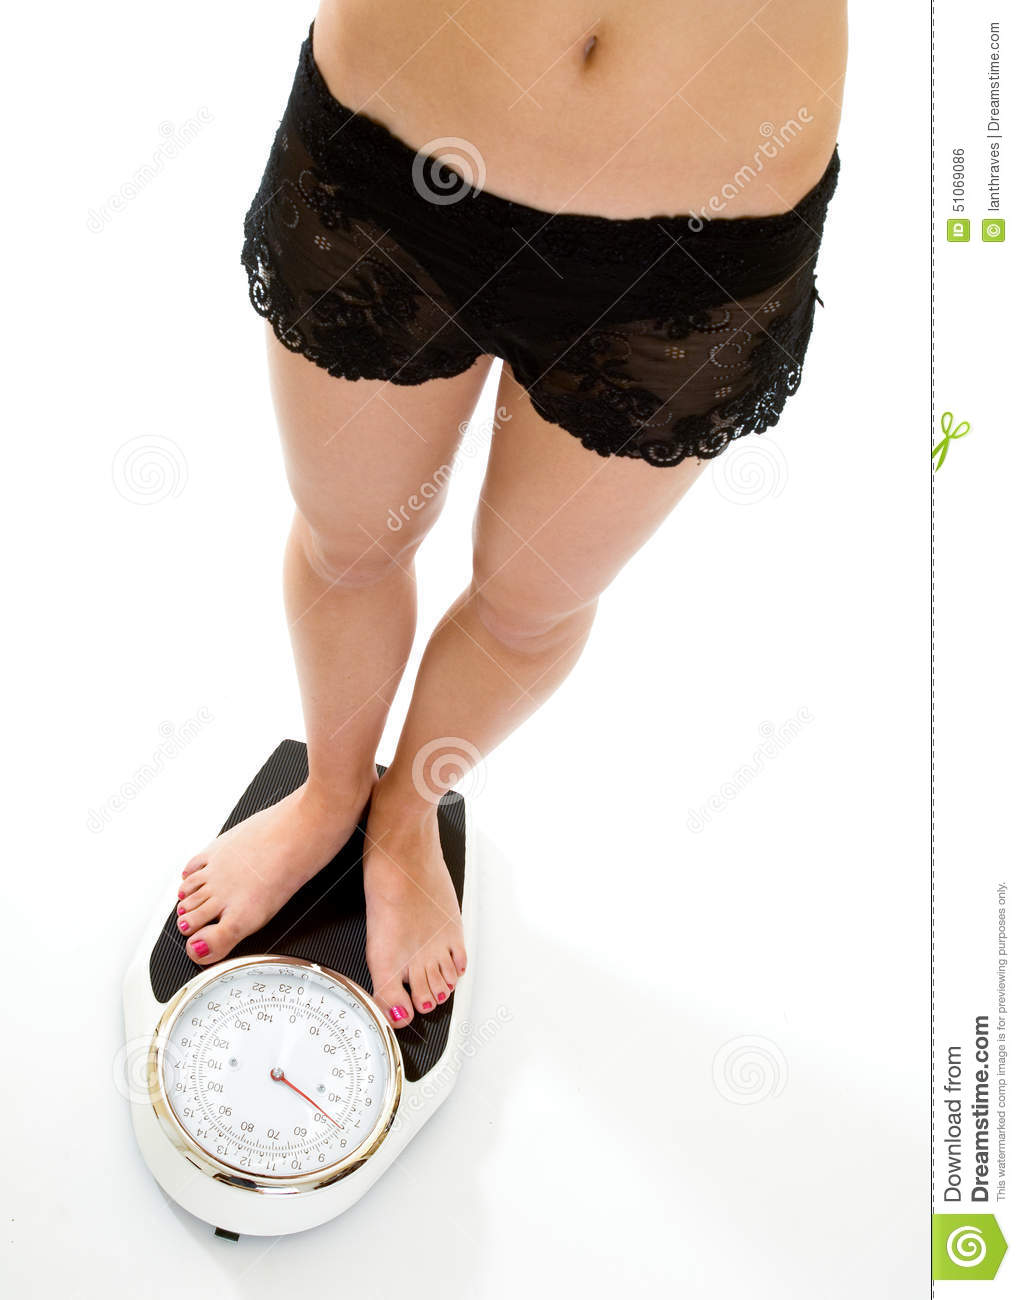 Woman Standing On Weighing Scales On Wooden Floor Low